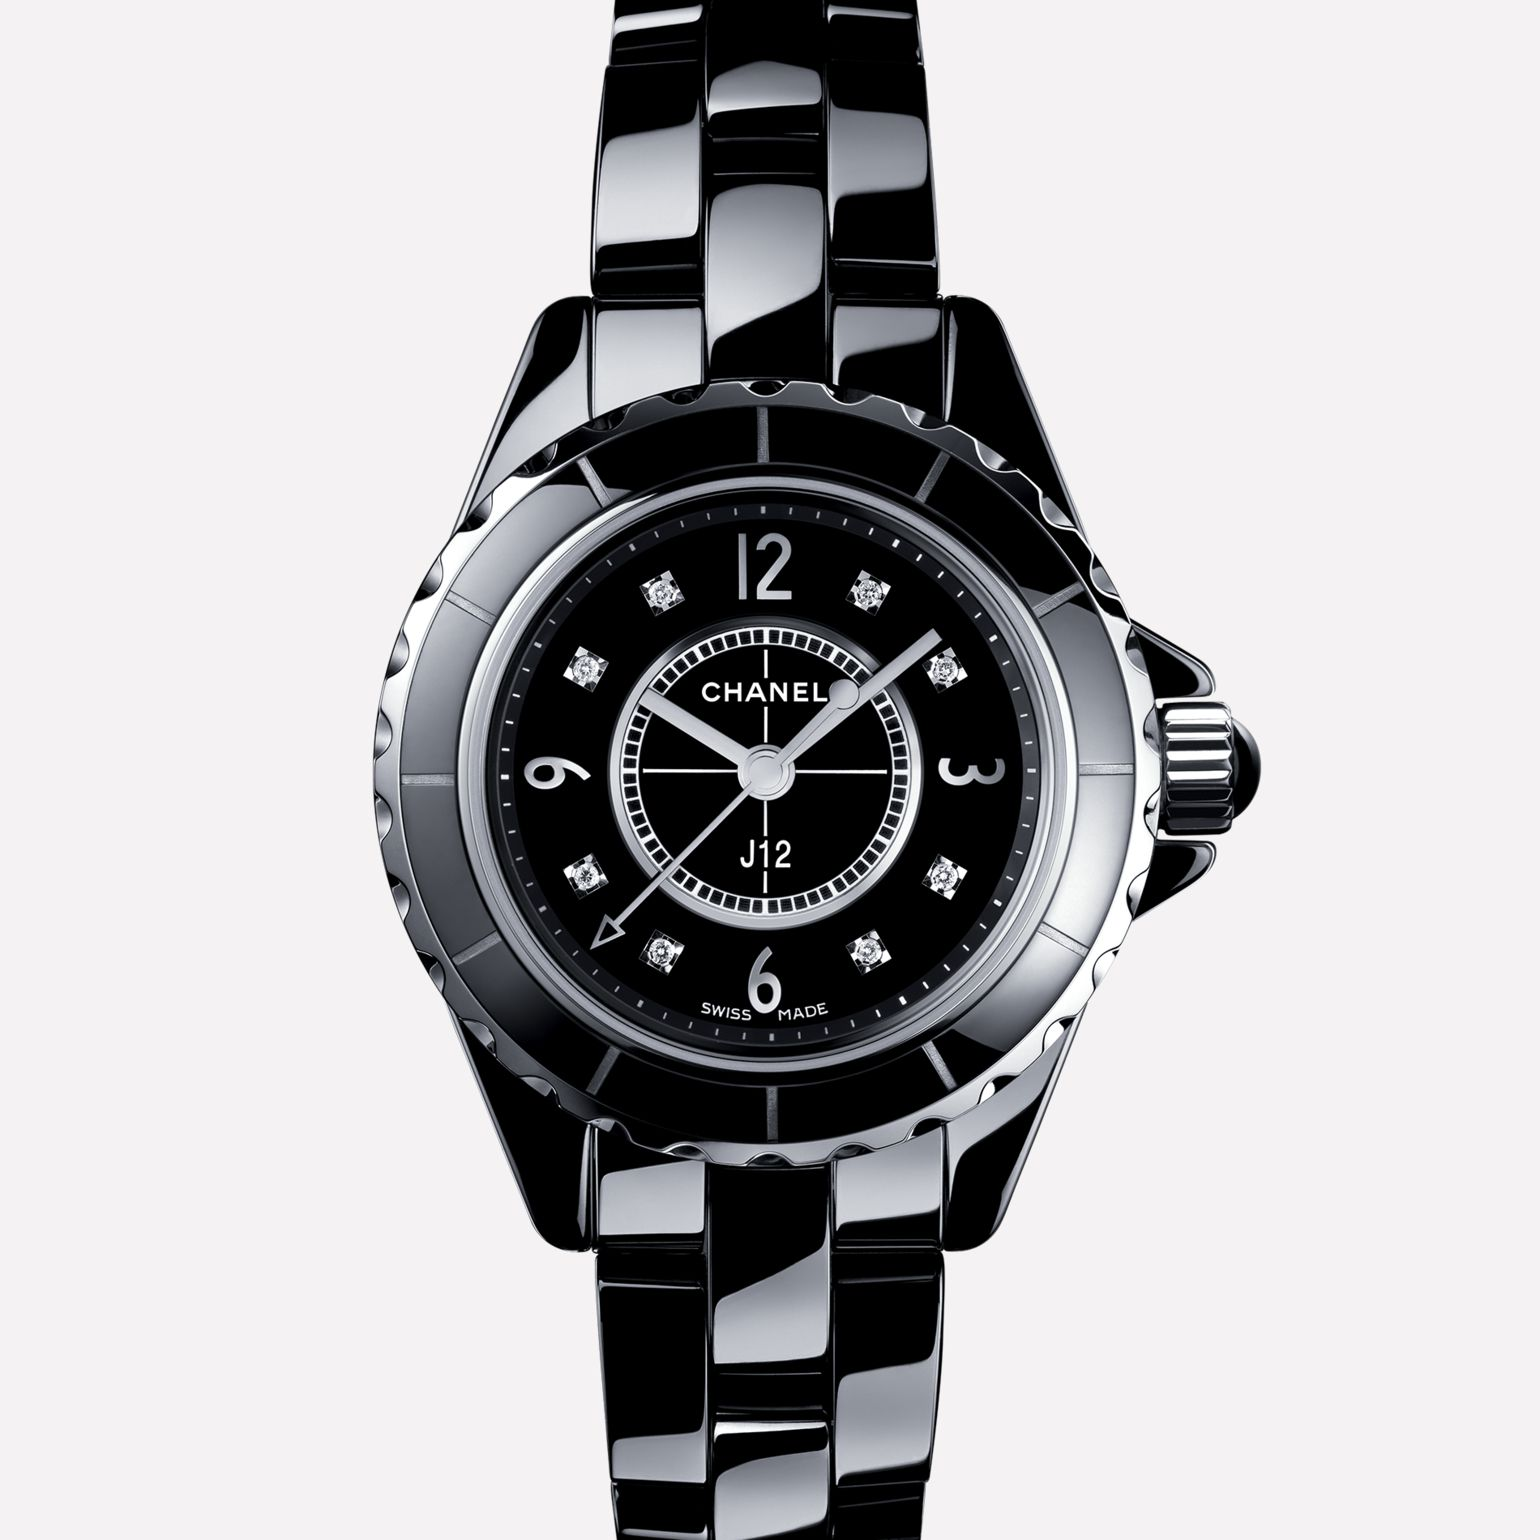 The Chanel J12 in black ceramic. Photo courtesy of Chanel.